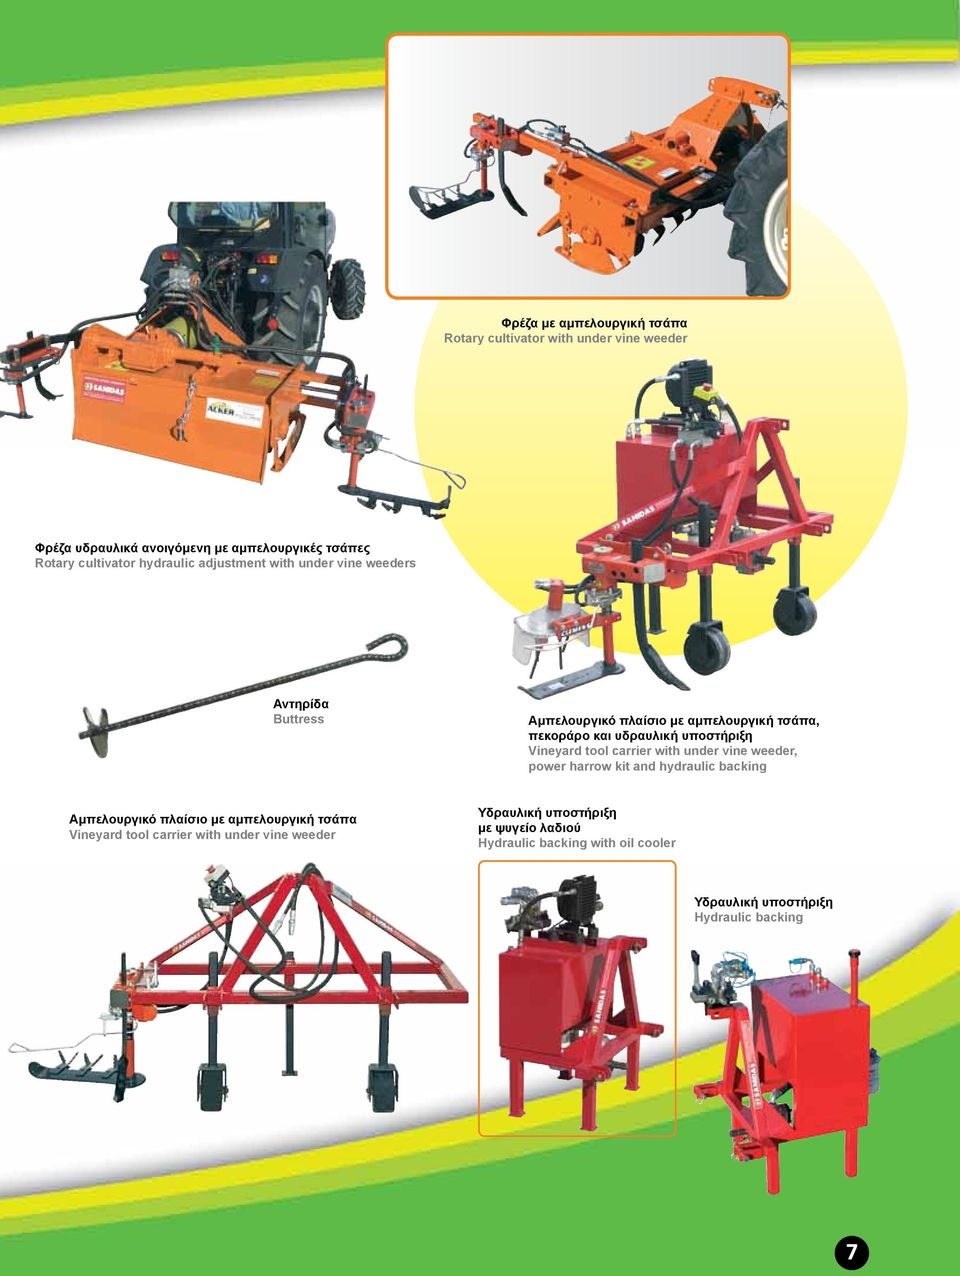 Vineyard tool carrier with under vine weeder, power harrow kit and hydraulic backing Αμπελουργικό πλαίσιο με αμπελουργική τσάπα Vineyard